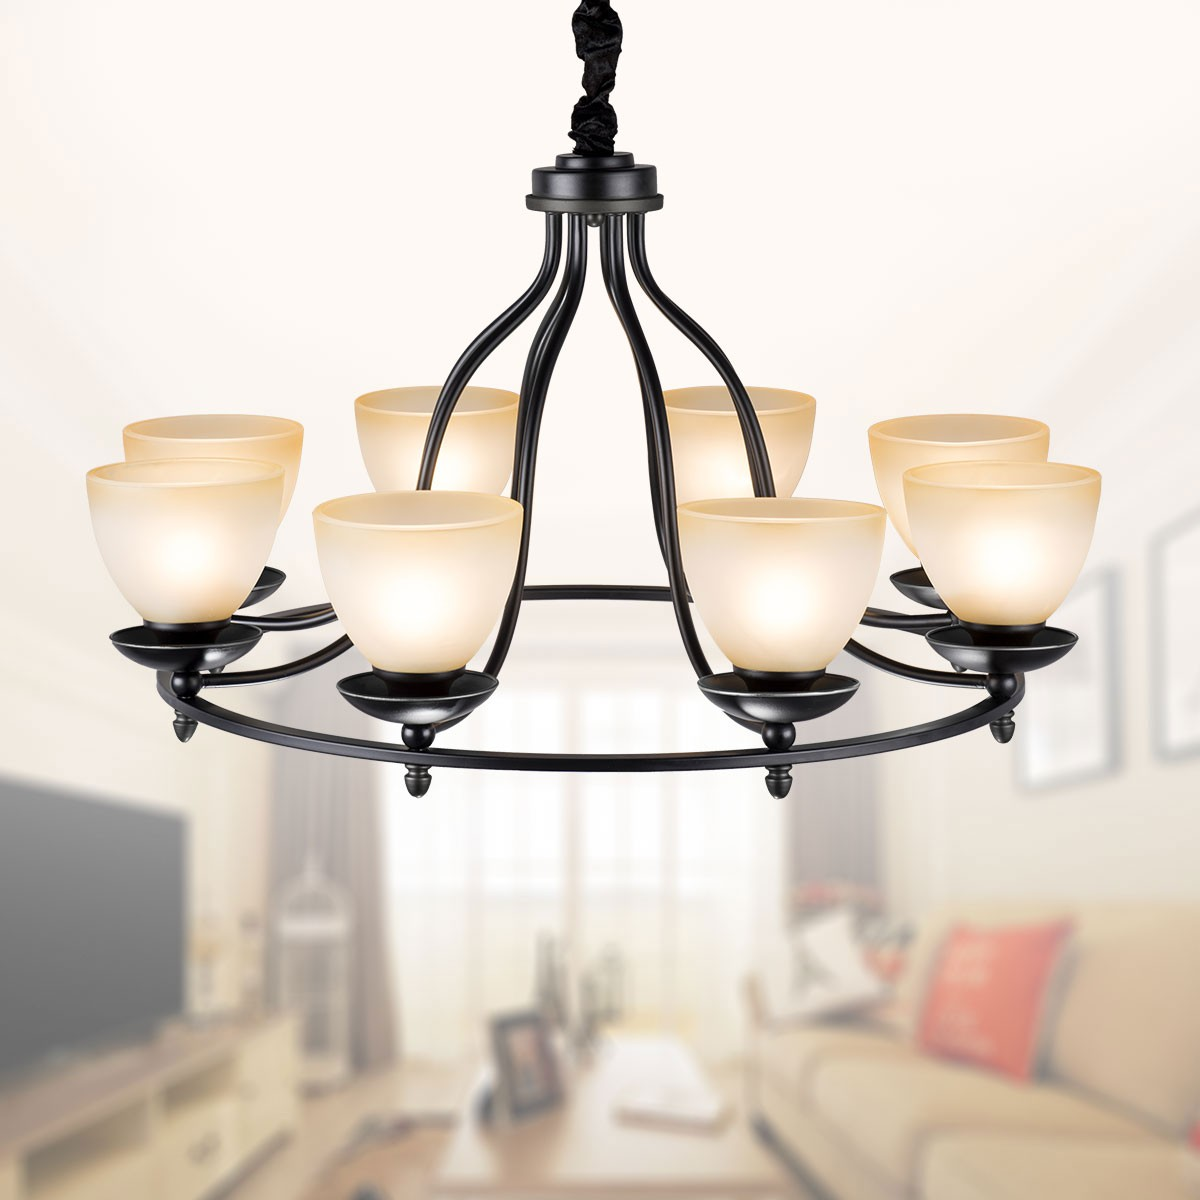 6 Light Black Wrought Iron Chandelier With Glass Shades Dk 2037